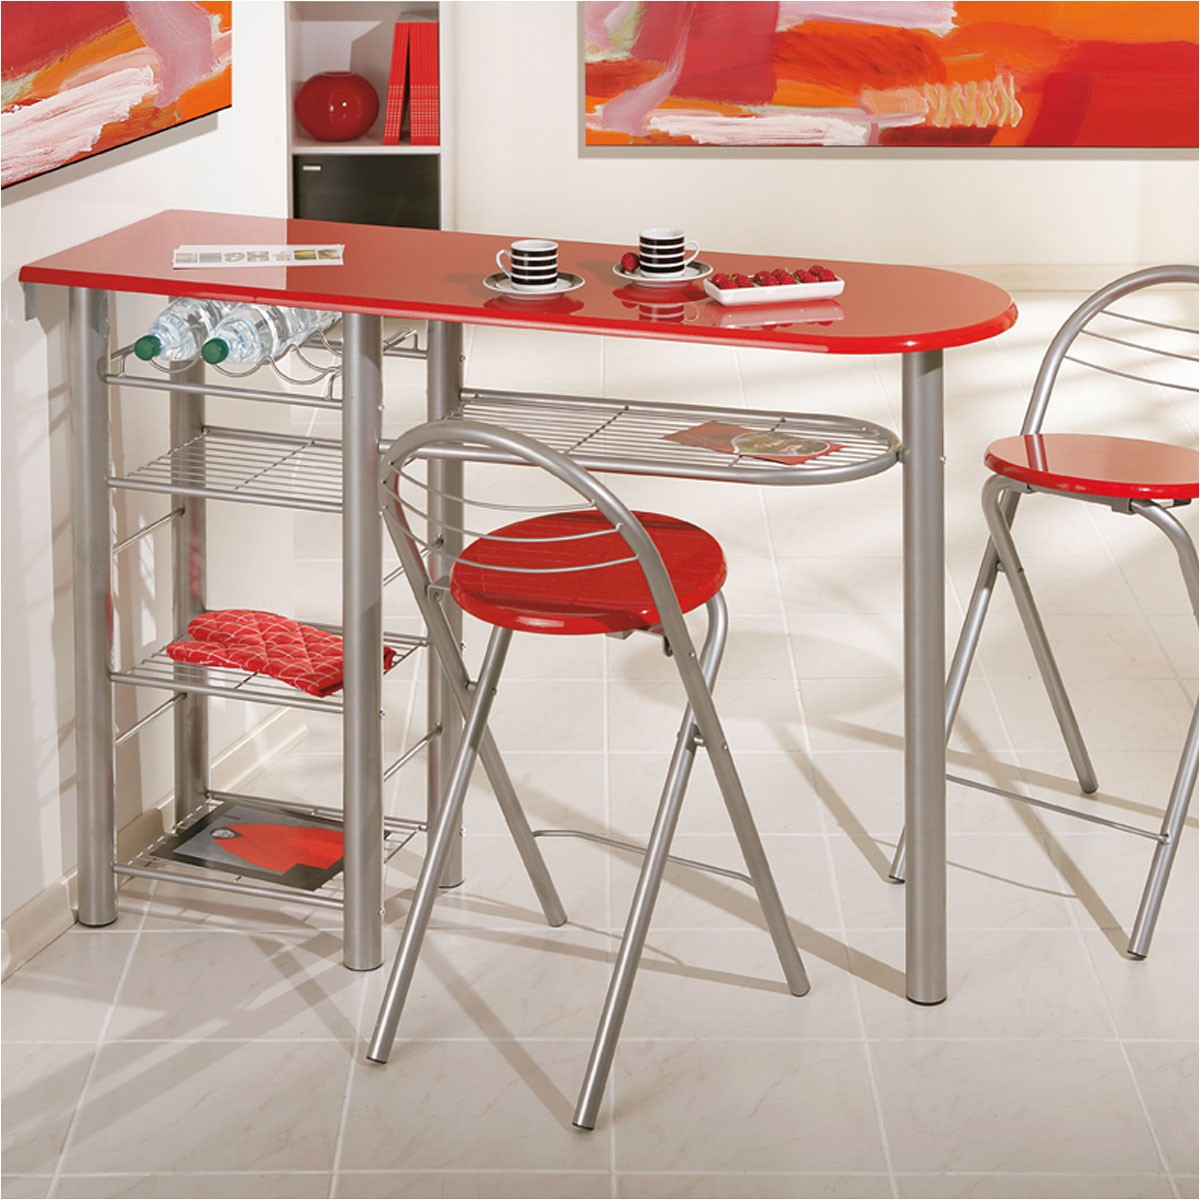 Table cuisine avec tabouret bar cuisine id es de for Table bar avec tabouret